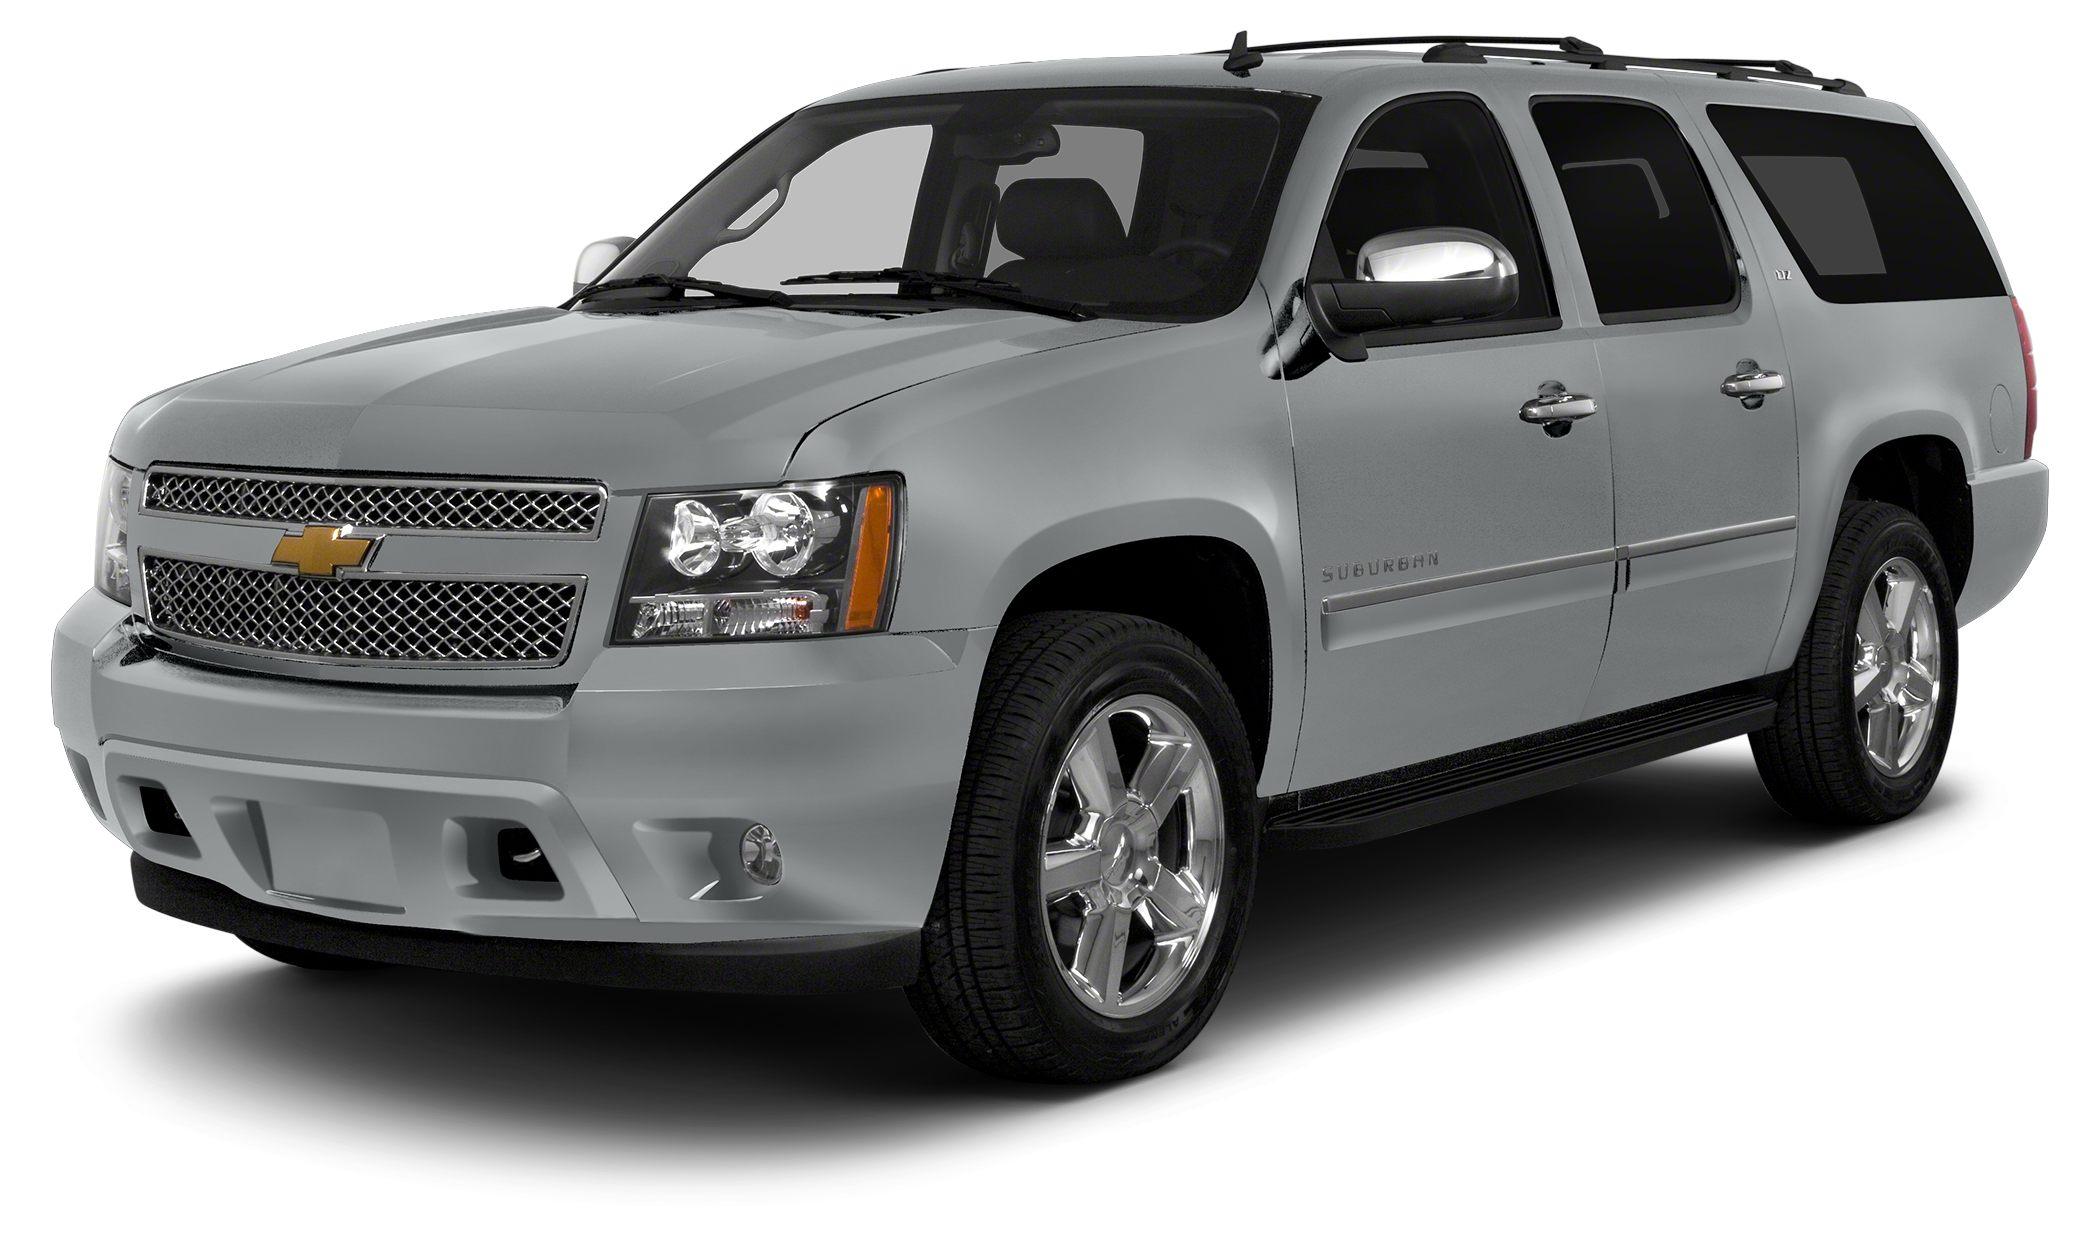 2014 Chevrolet Suburban 1500 LT One owner 2014 Chevrolet Suburban LTZ with the Z71 package Local